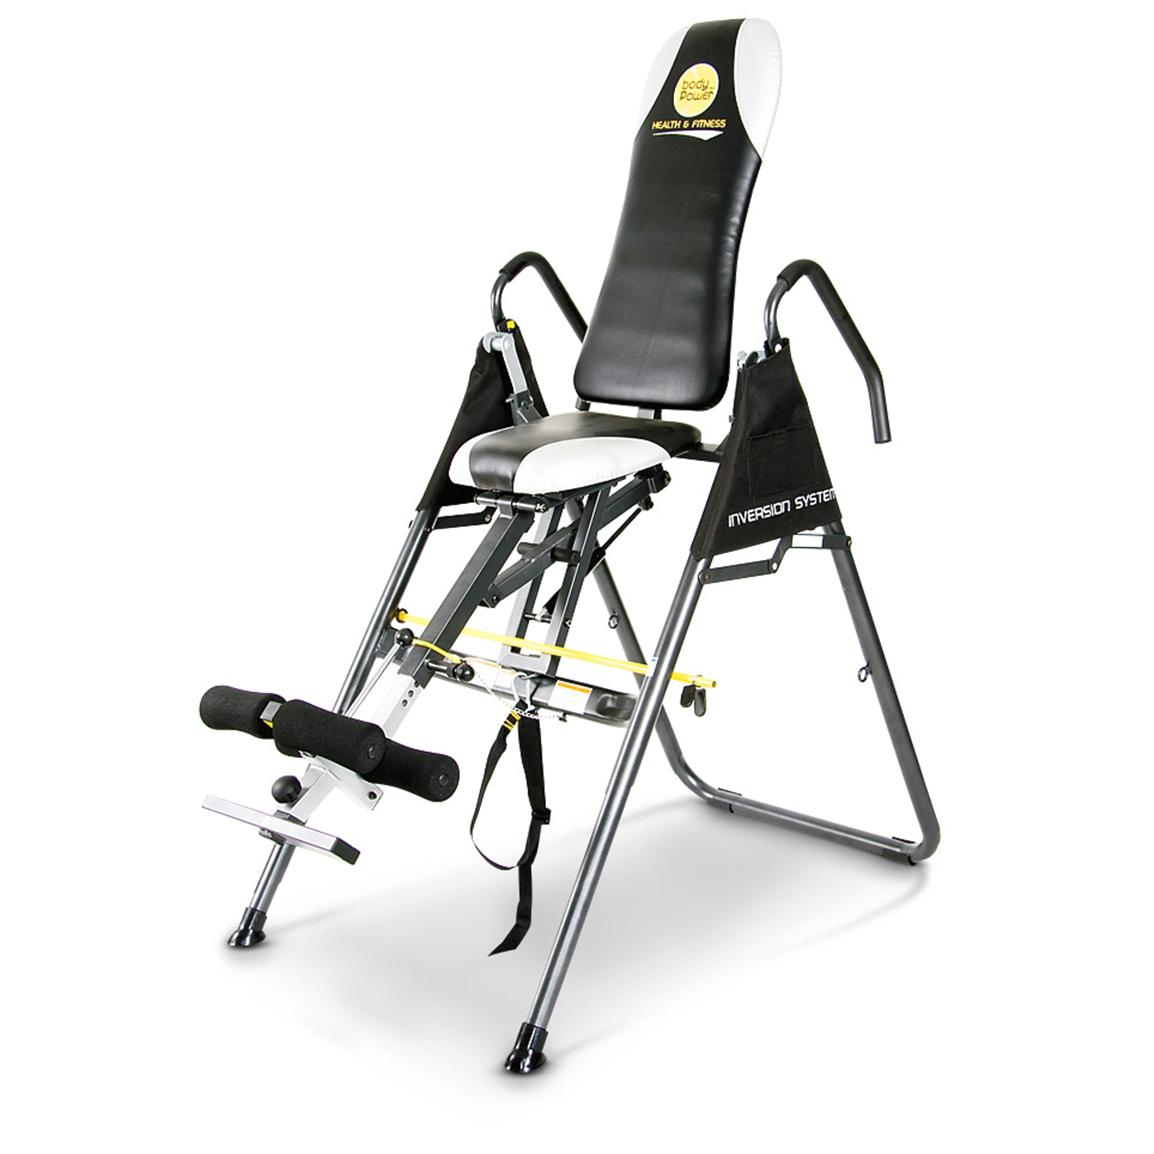 Chair-style Inversion System